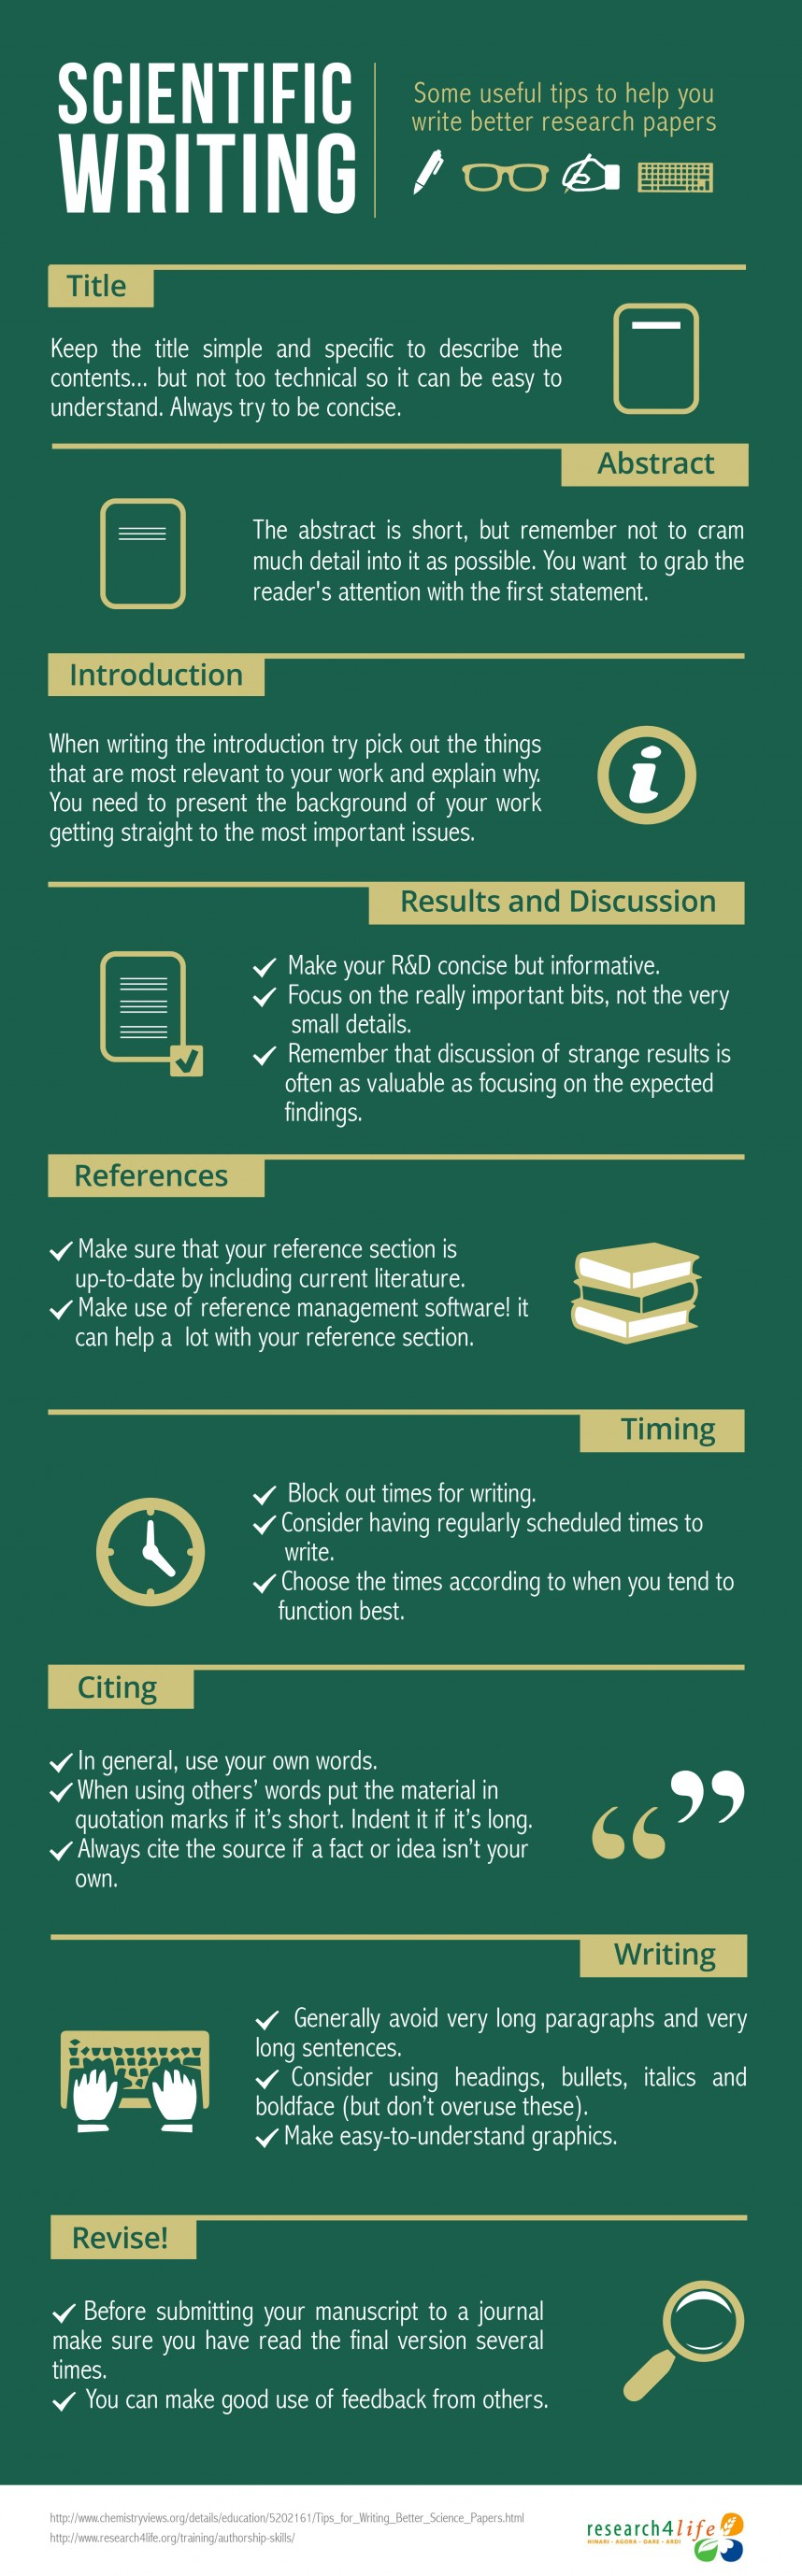 001 Tips Writing Research Paper Scientific Wonderful For A Fast Papers Apa